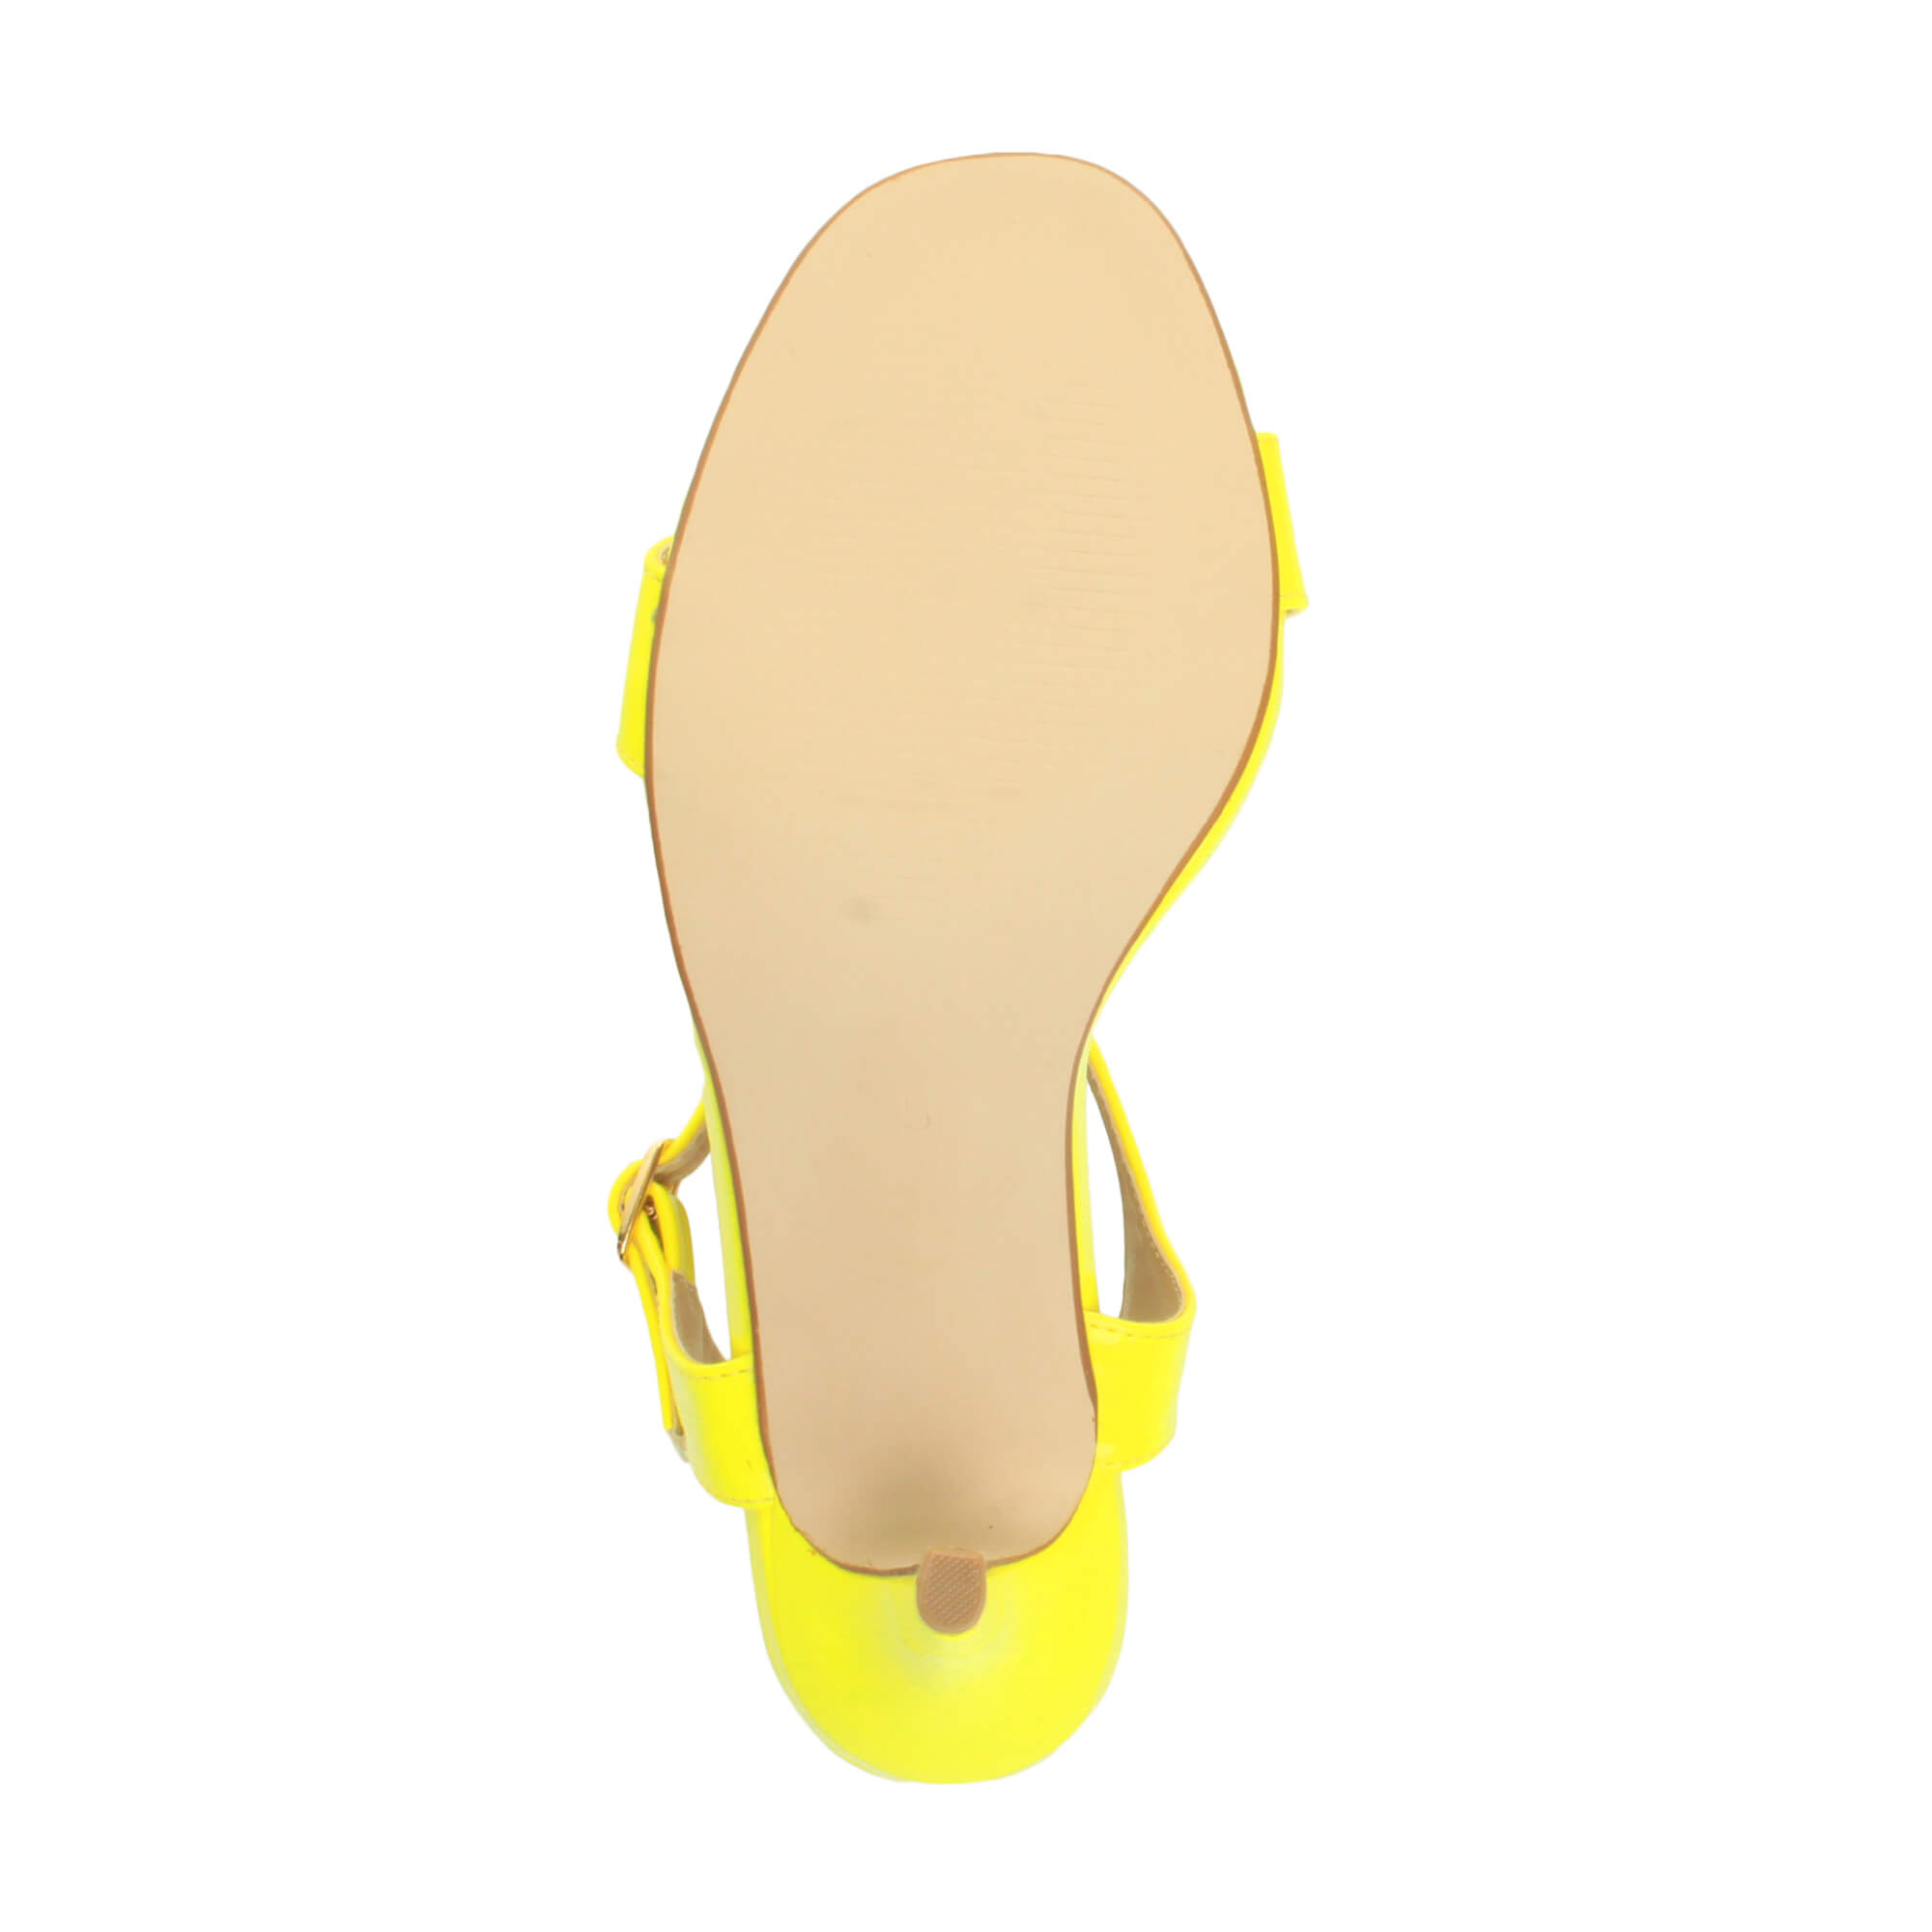 WOMENS-LADIES-HIGH-HEEL-BUCKLE-STRAPPY-BASIC-BARELY-THERE-SANDALS-SHOES-SIZE thumbnail 92